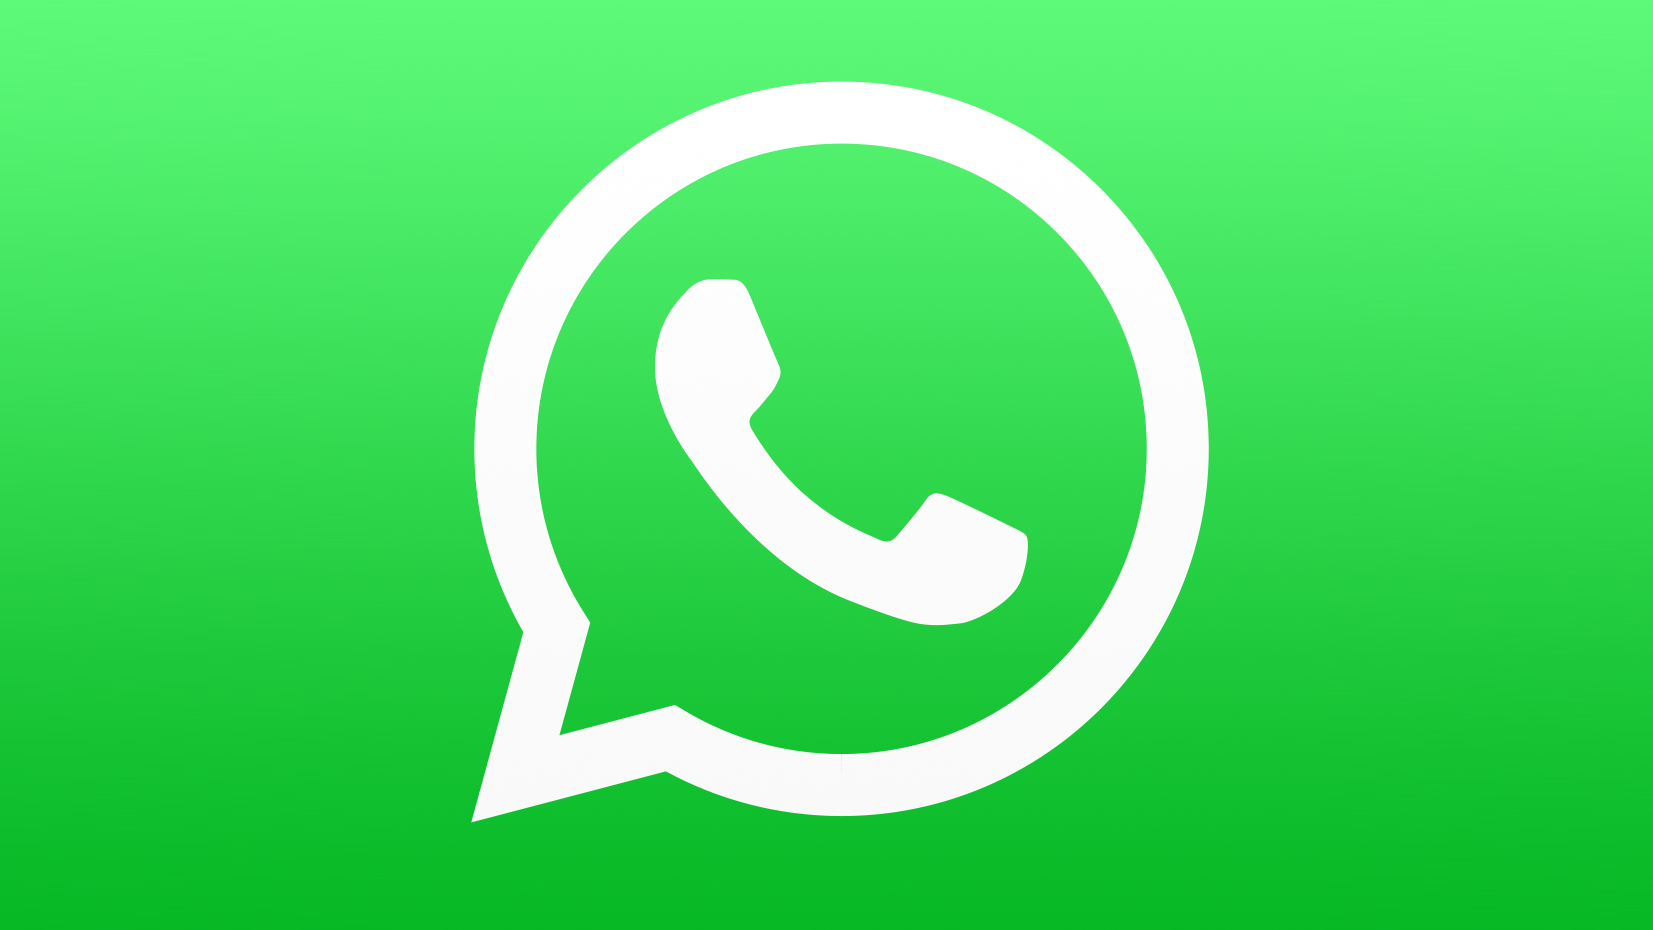 whatsapp-icon-2015-16x9